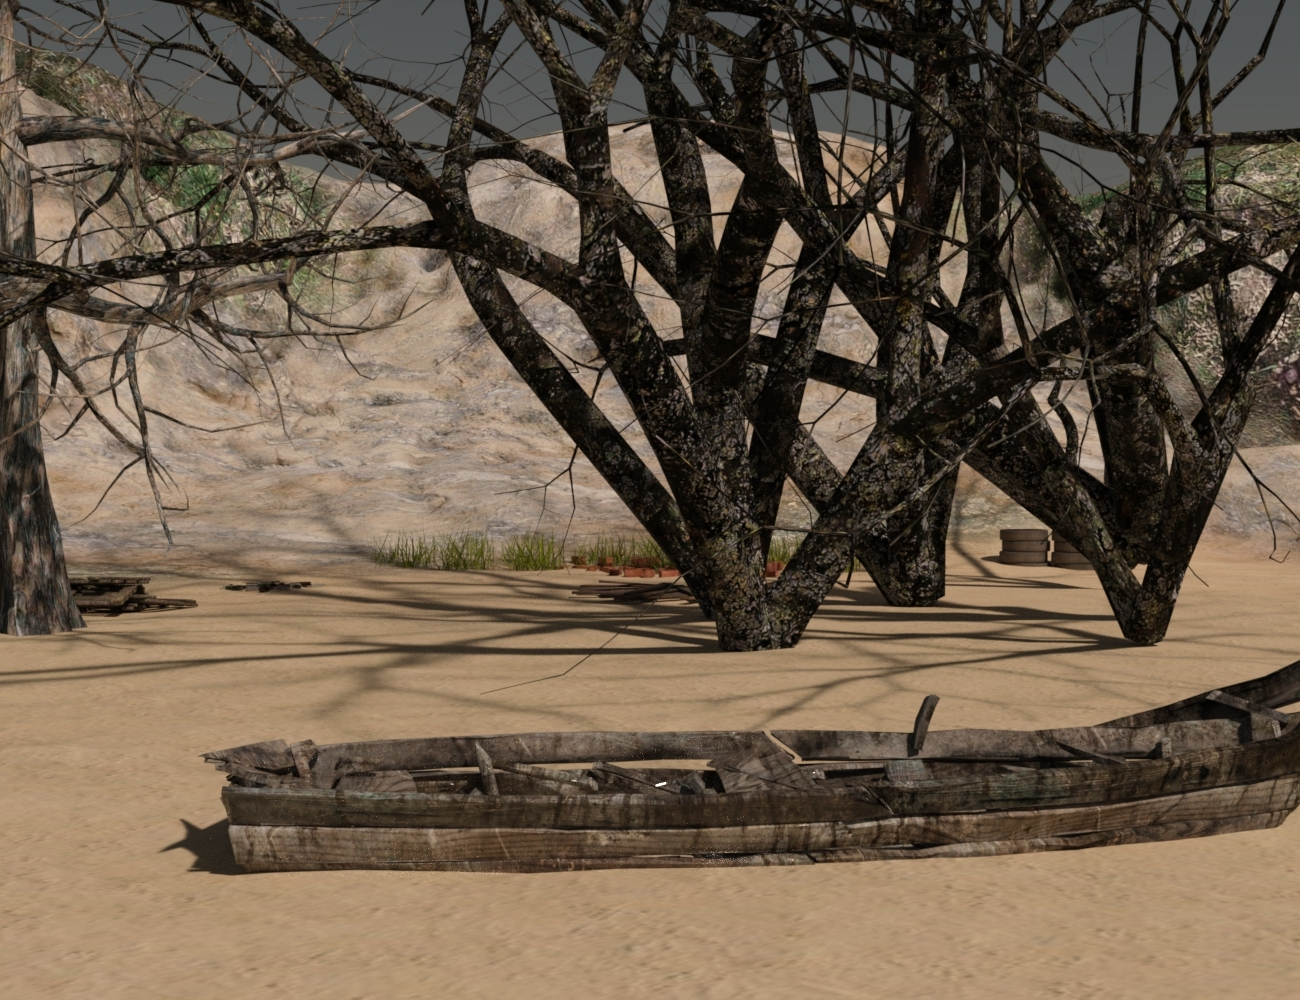 Old Lake bed by LutherD